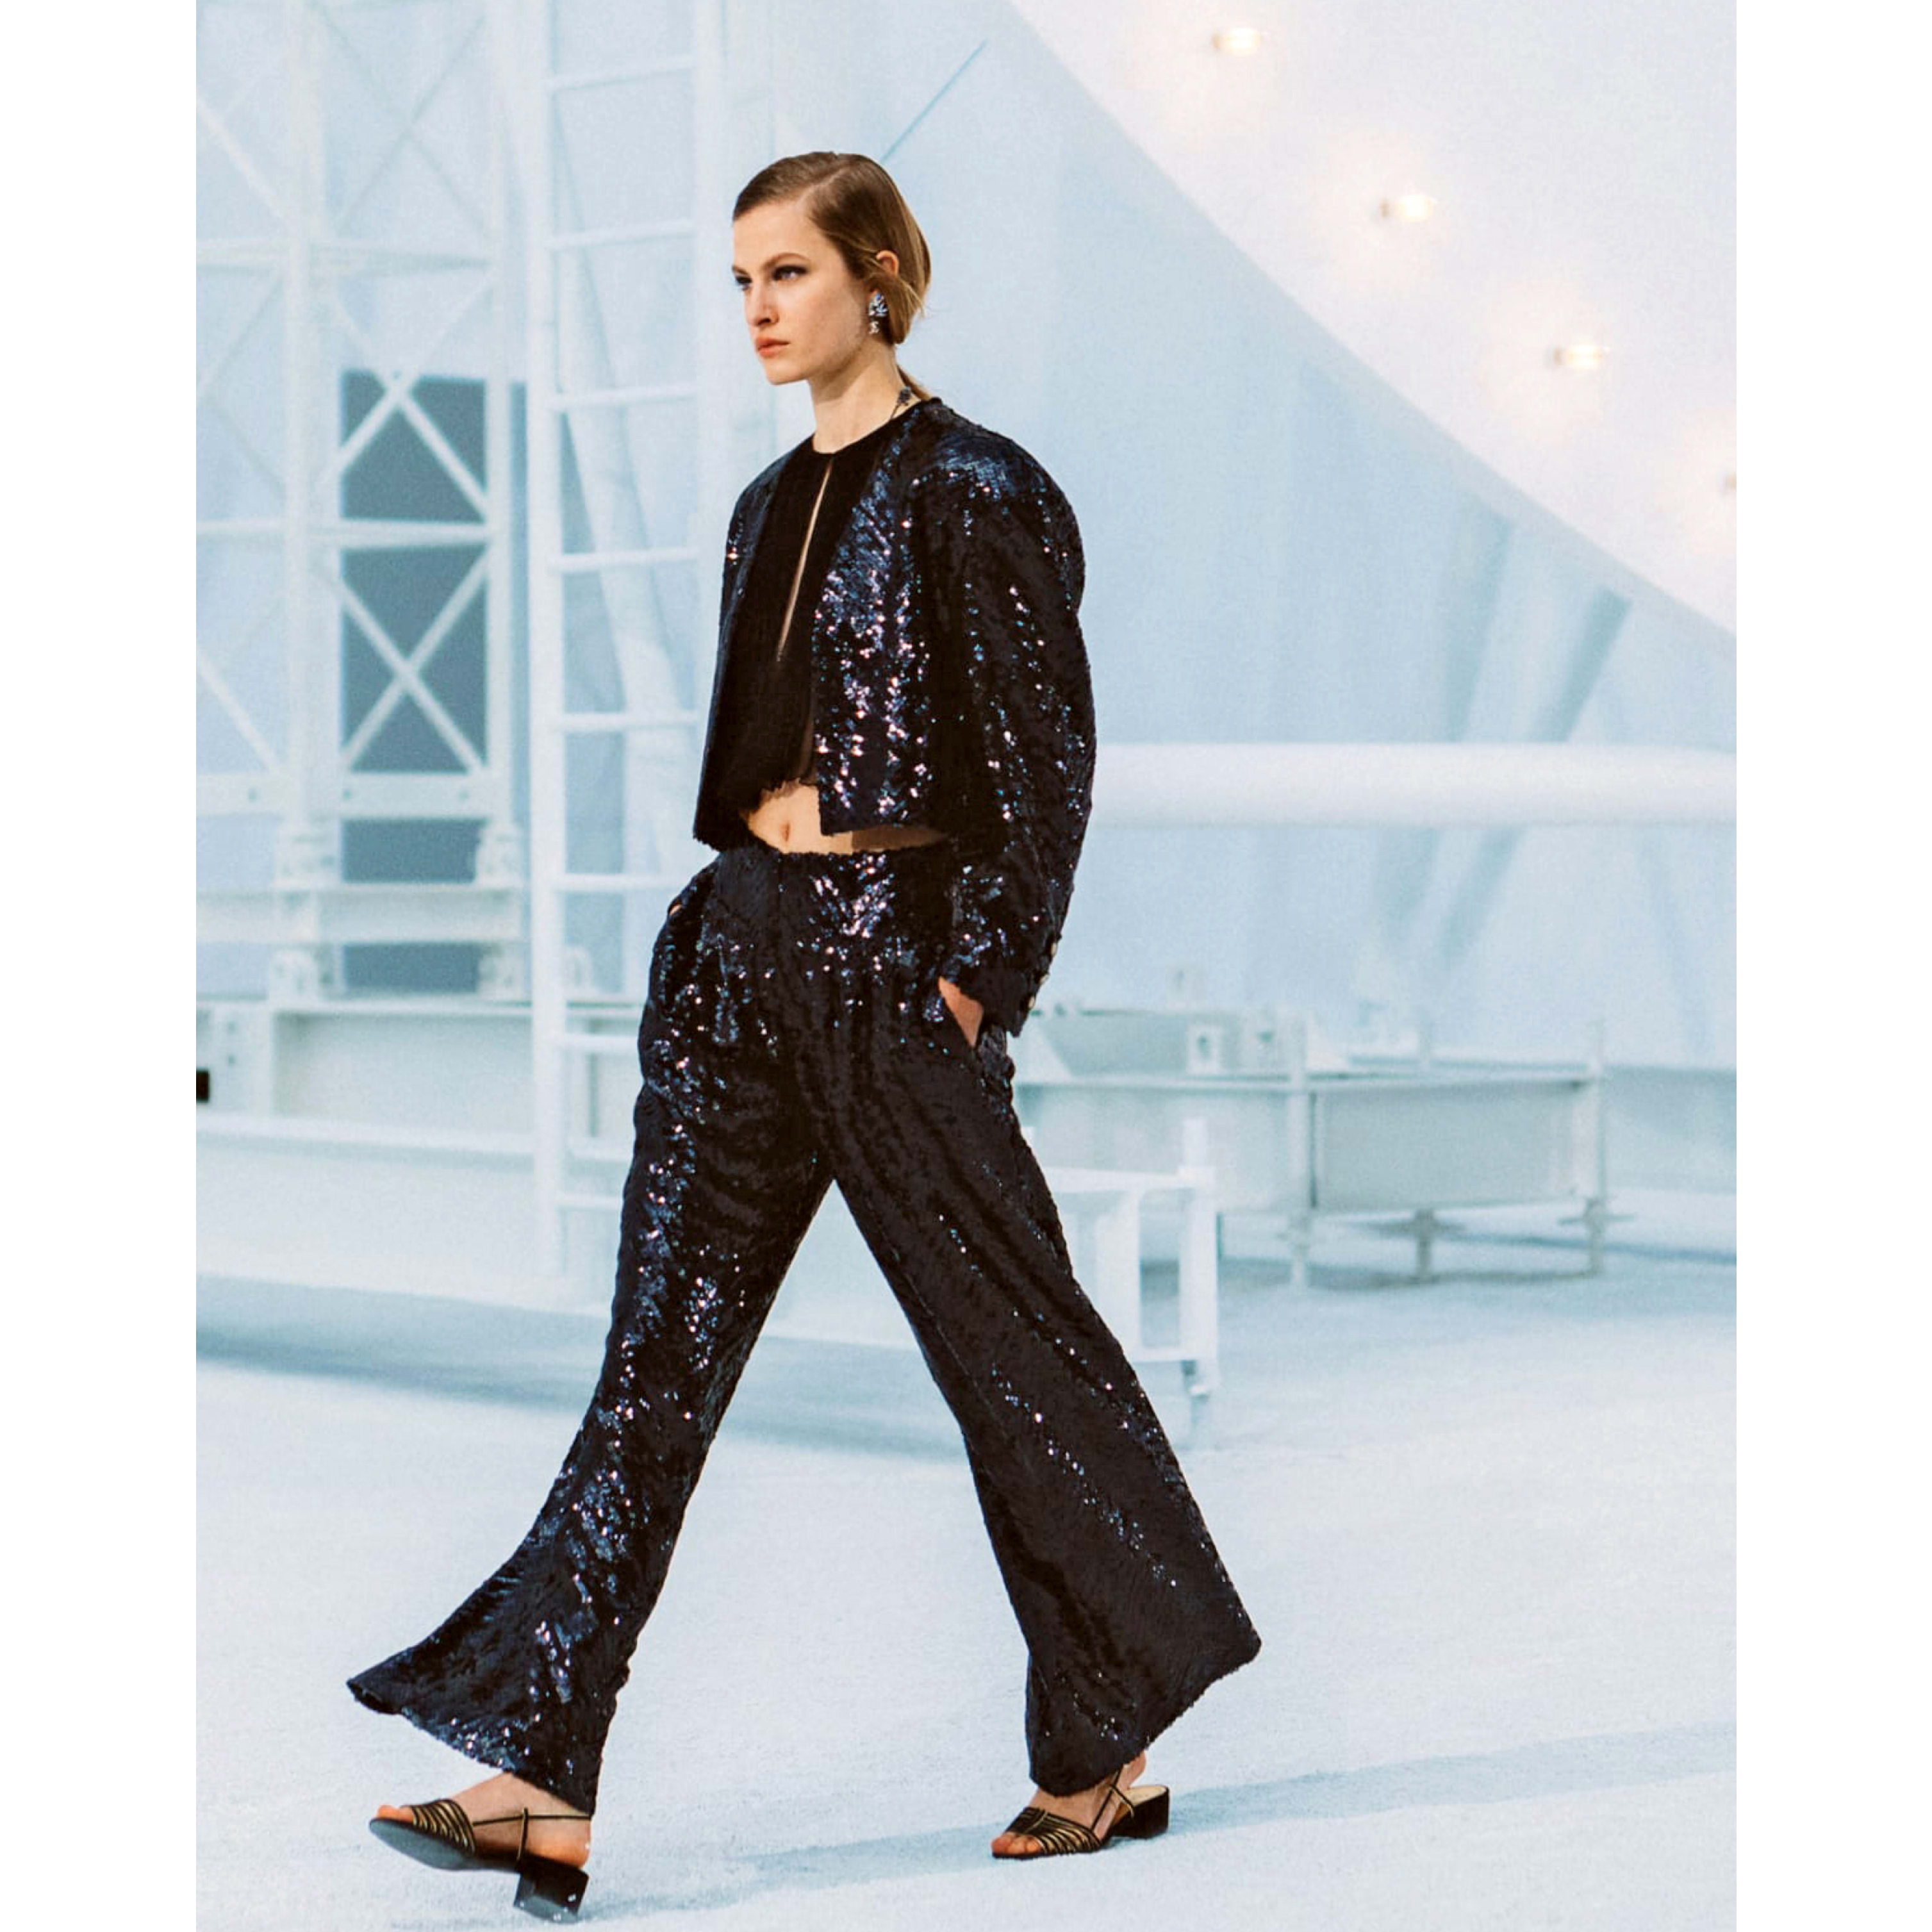 Trousers - Black - Sequin Embroidered Silk Muslin - CHANEL - Default view - see standard sized version